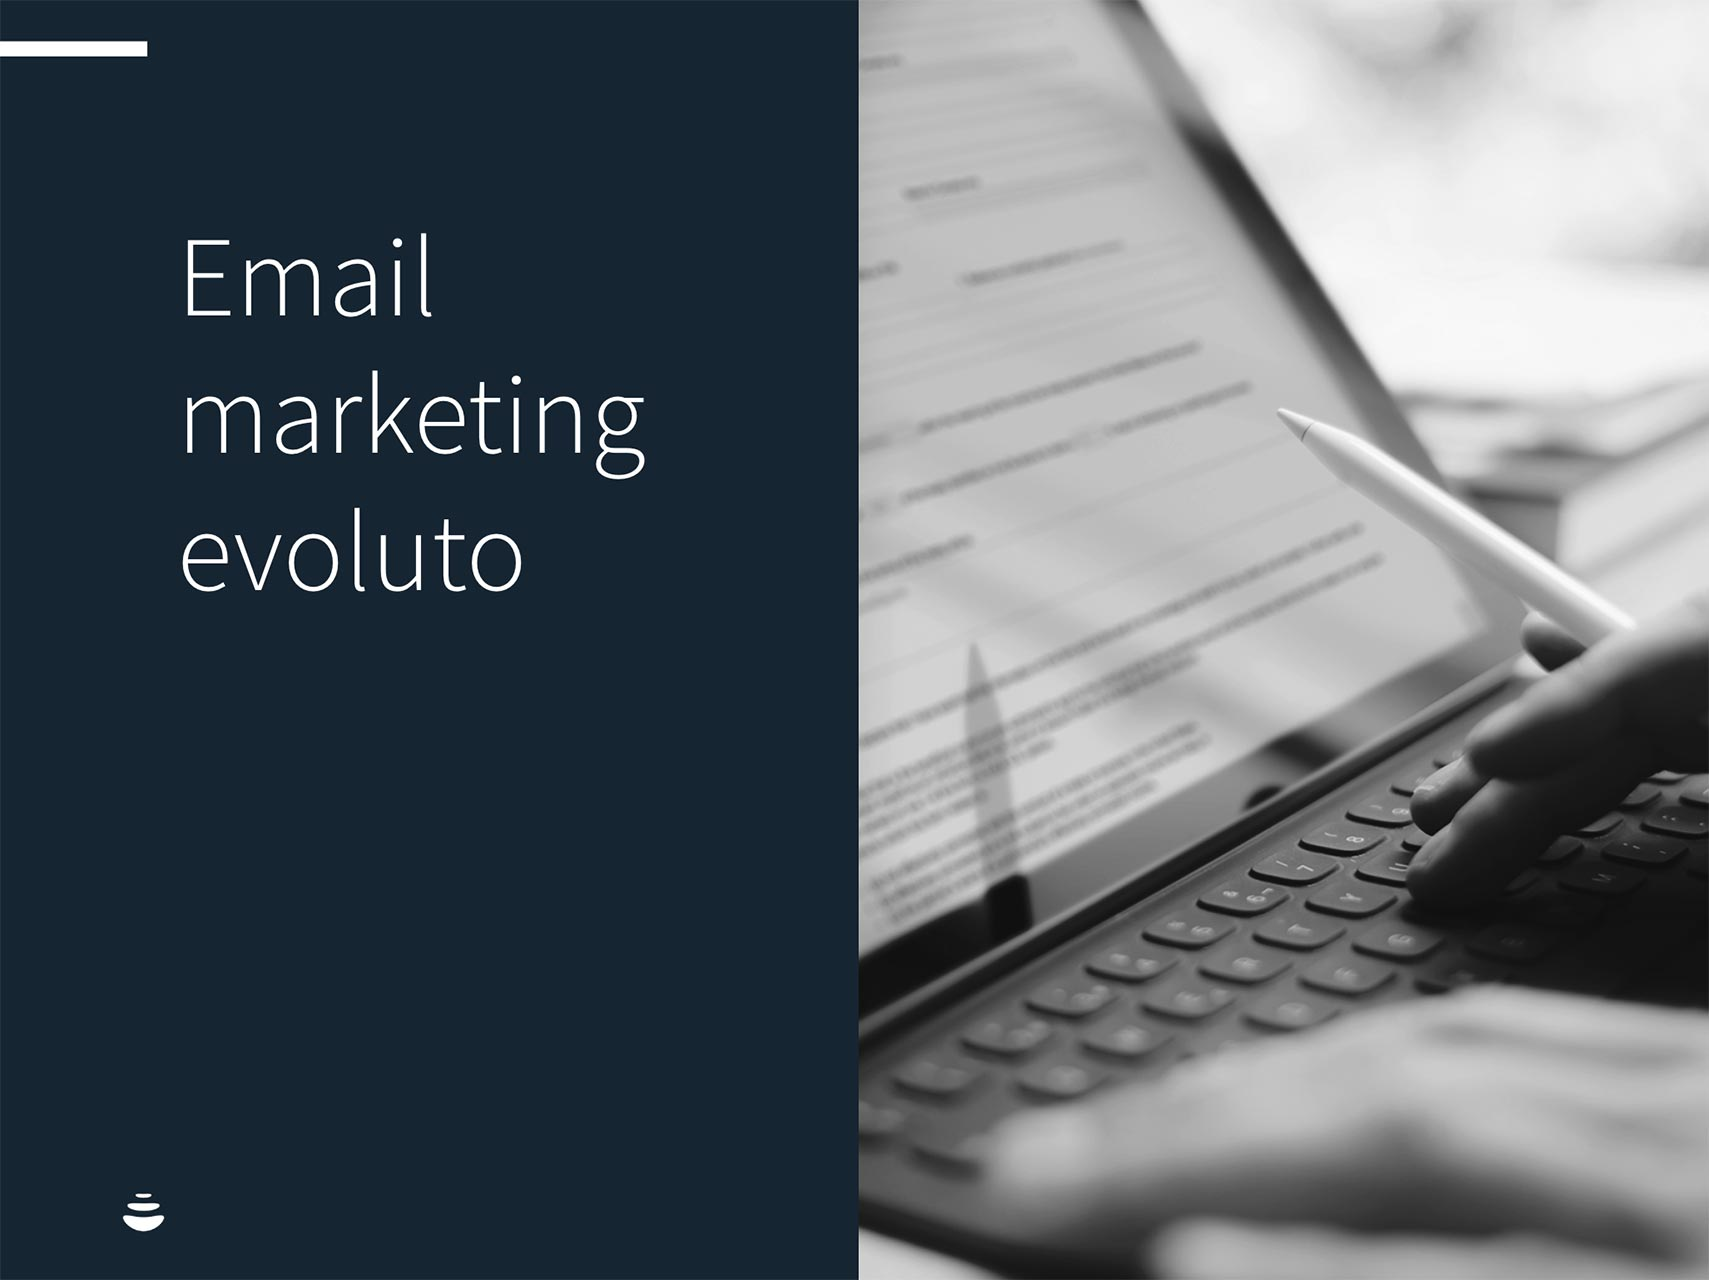 marketing trend 2019 2020, email marketing evoluto